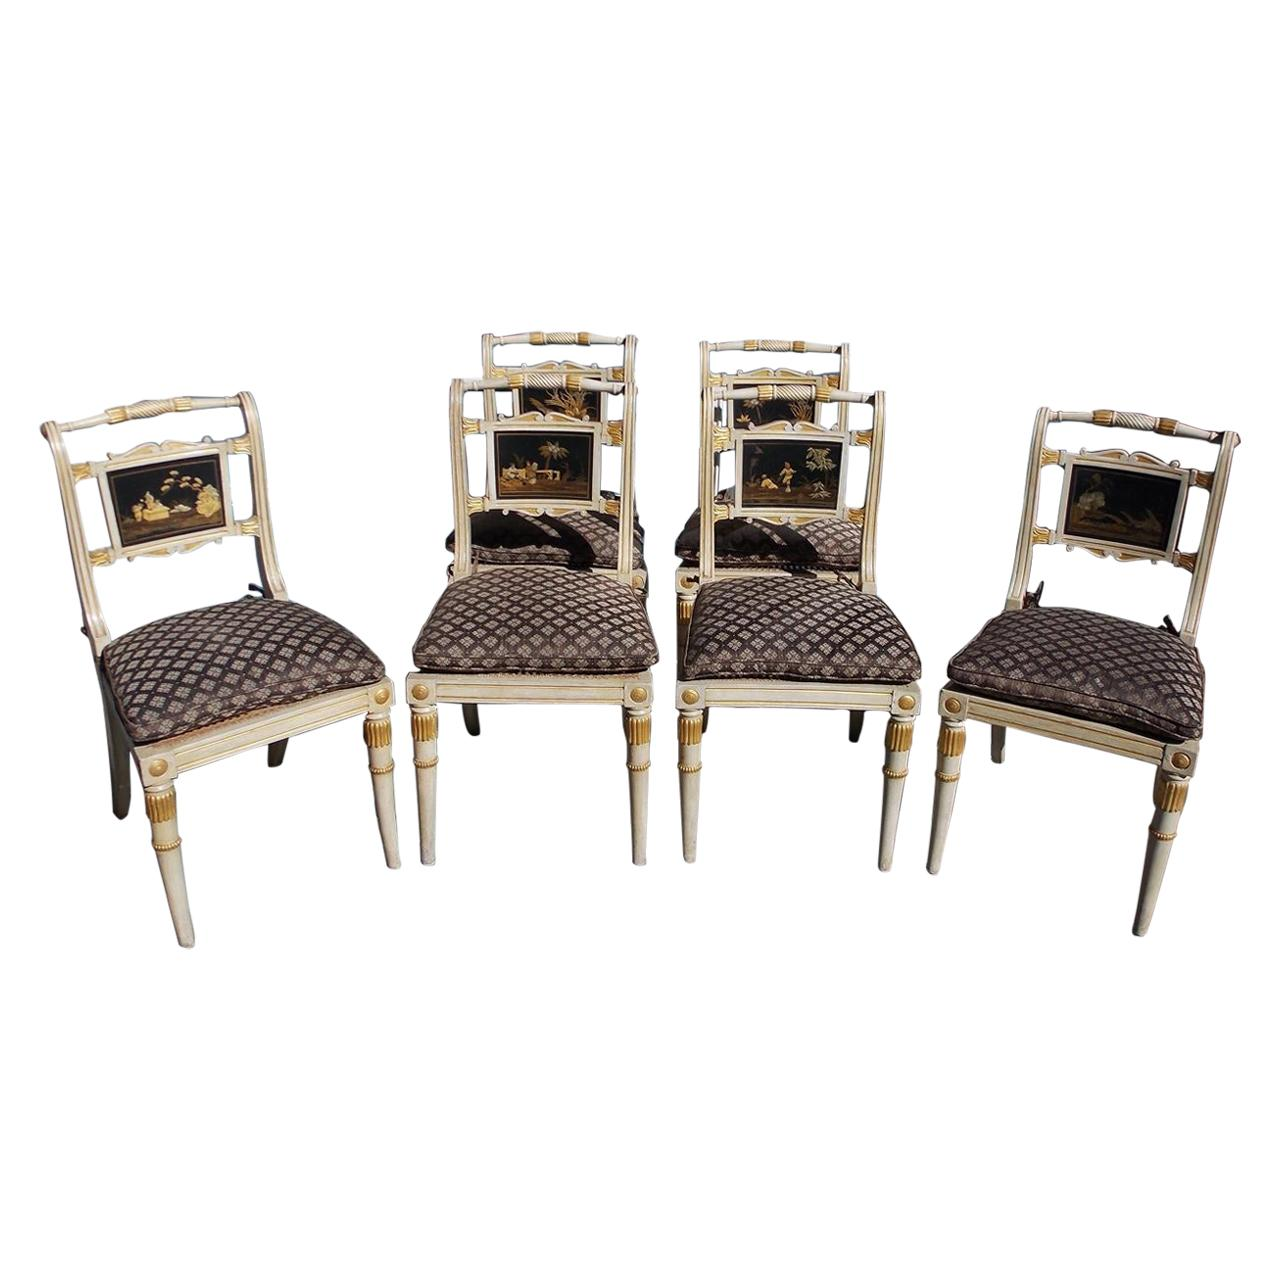 Set of Six English Regency Chinoiserie Painted and Gilt Side Chairs, Circa 1810